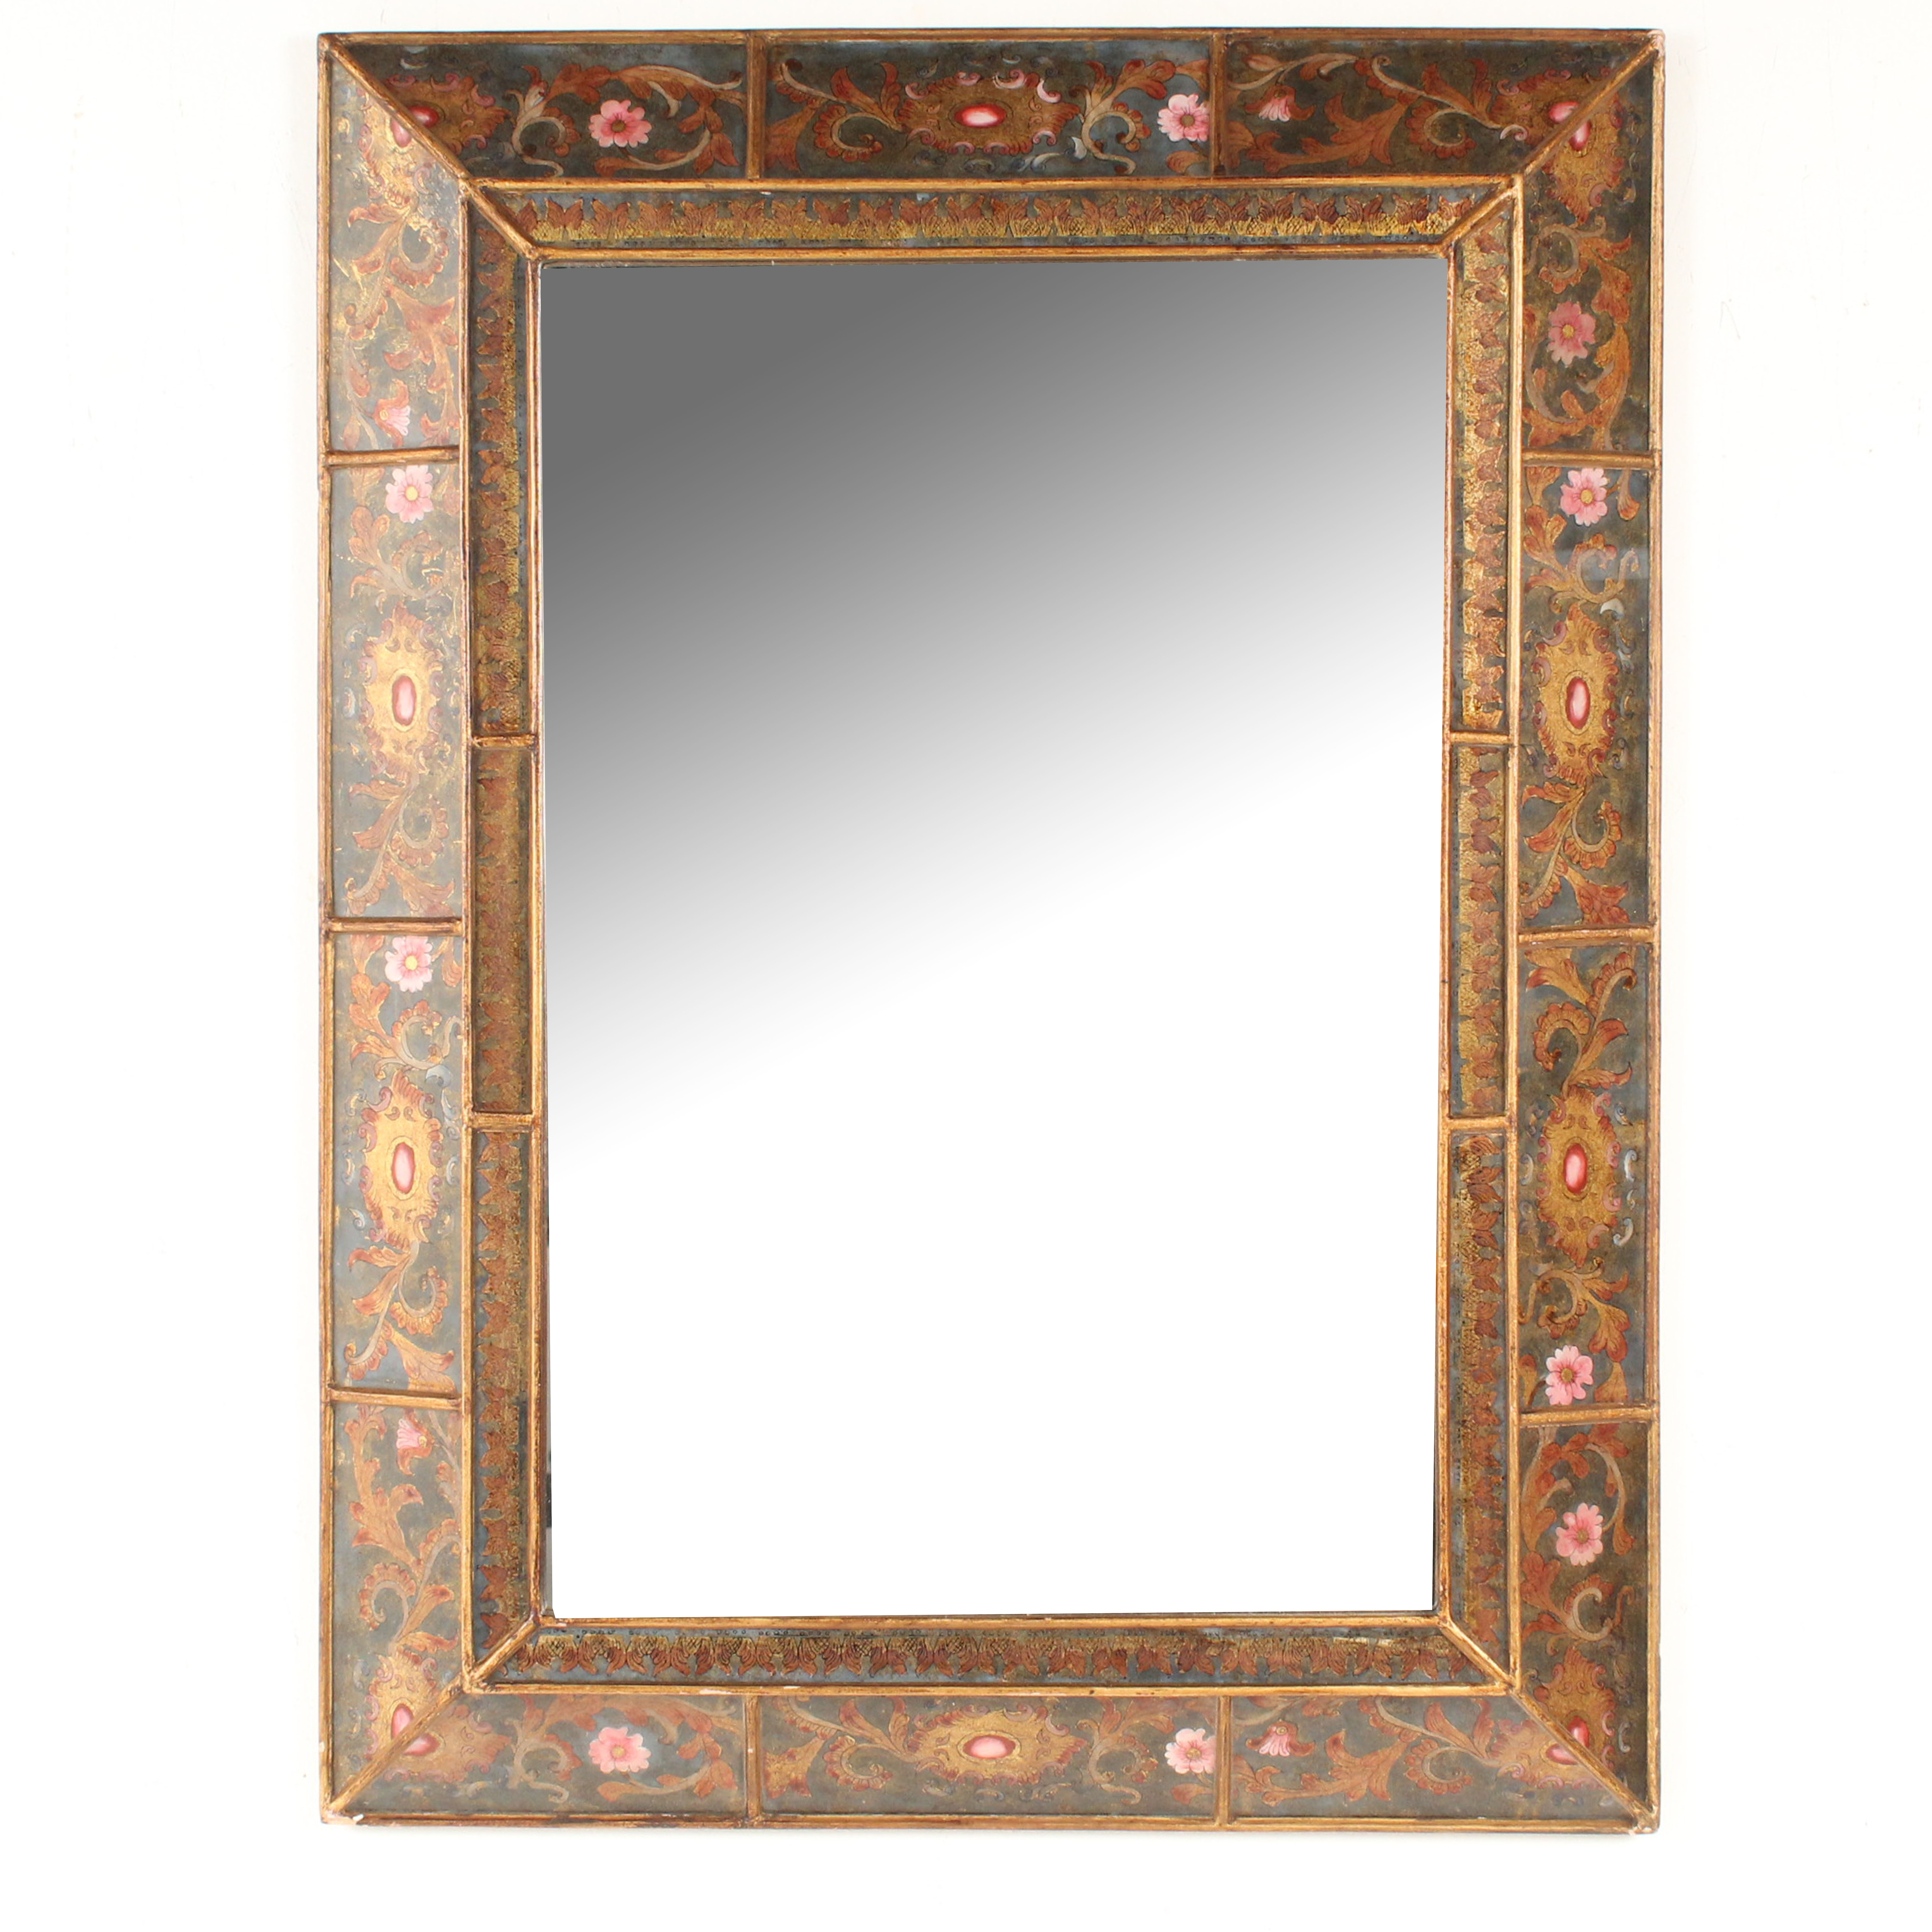 Abercrombie Interiors Wall Mirror with Hand Painted Frame